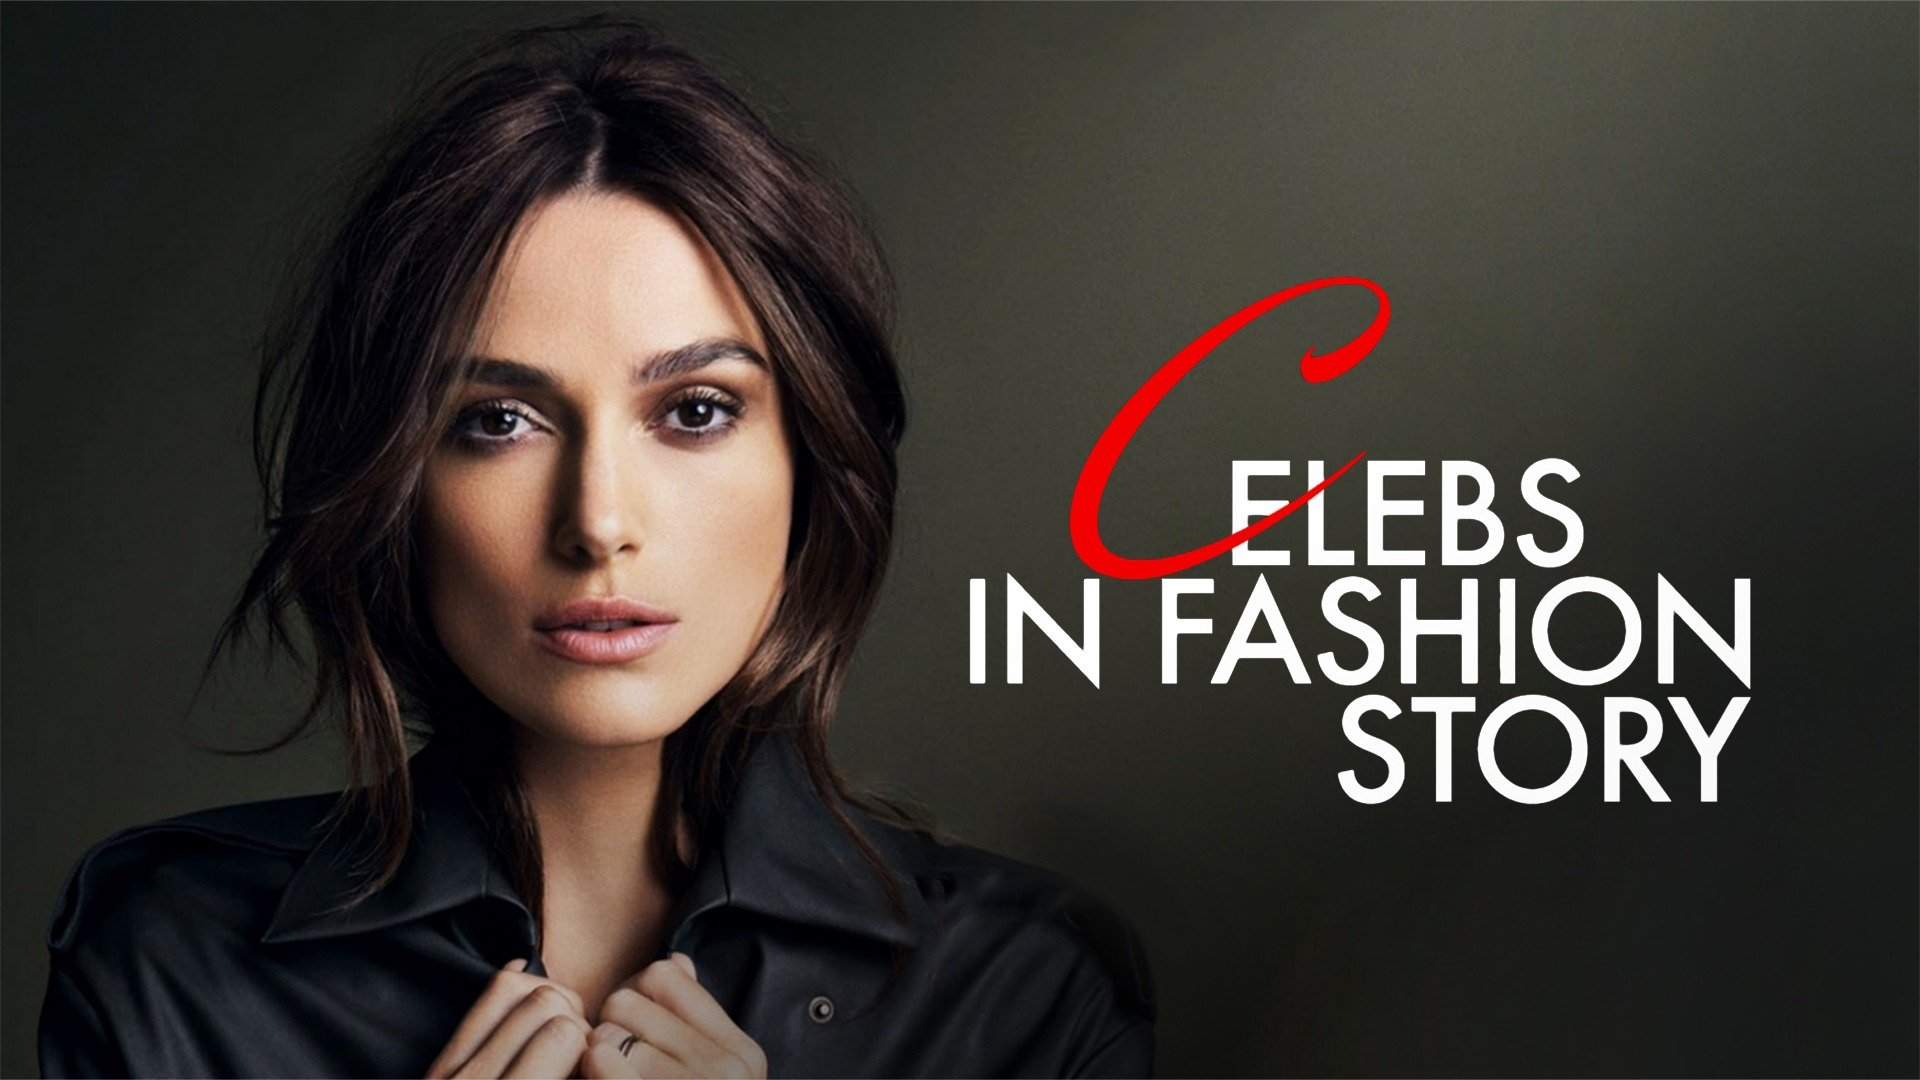 Celebs in Fashion Story